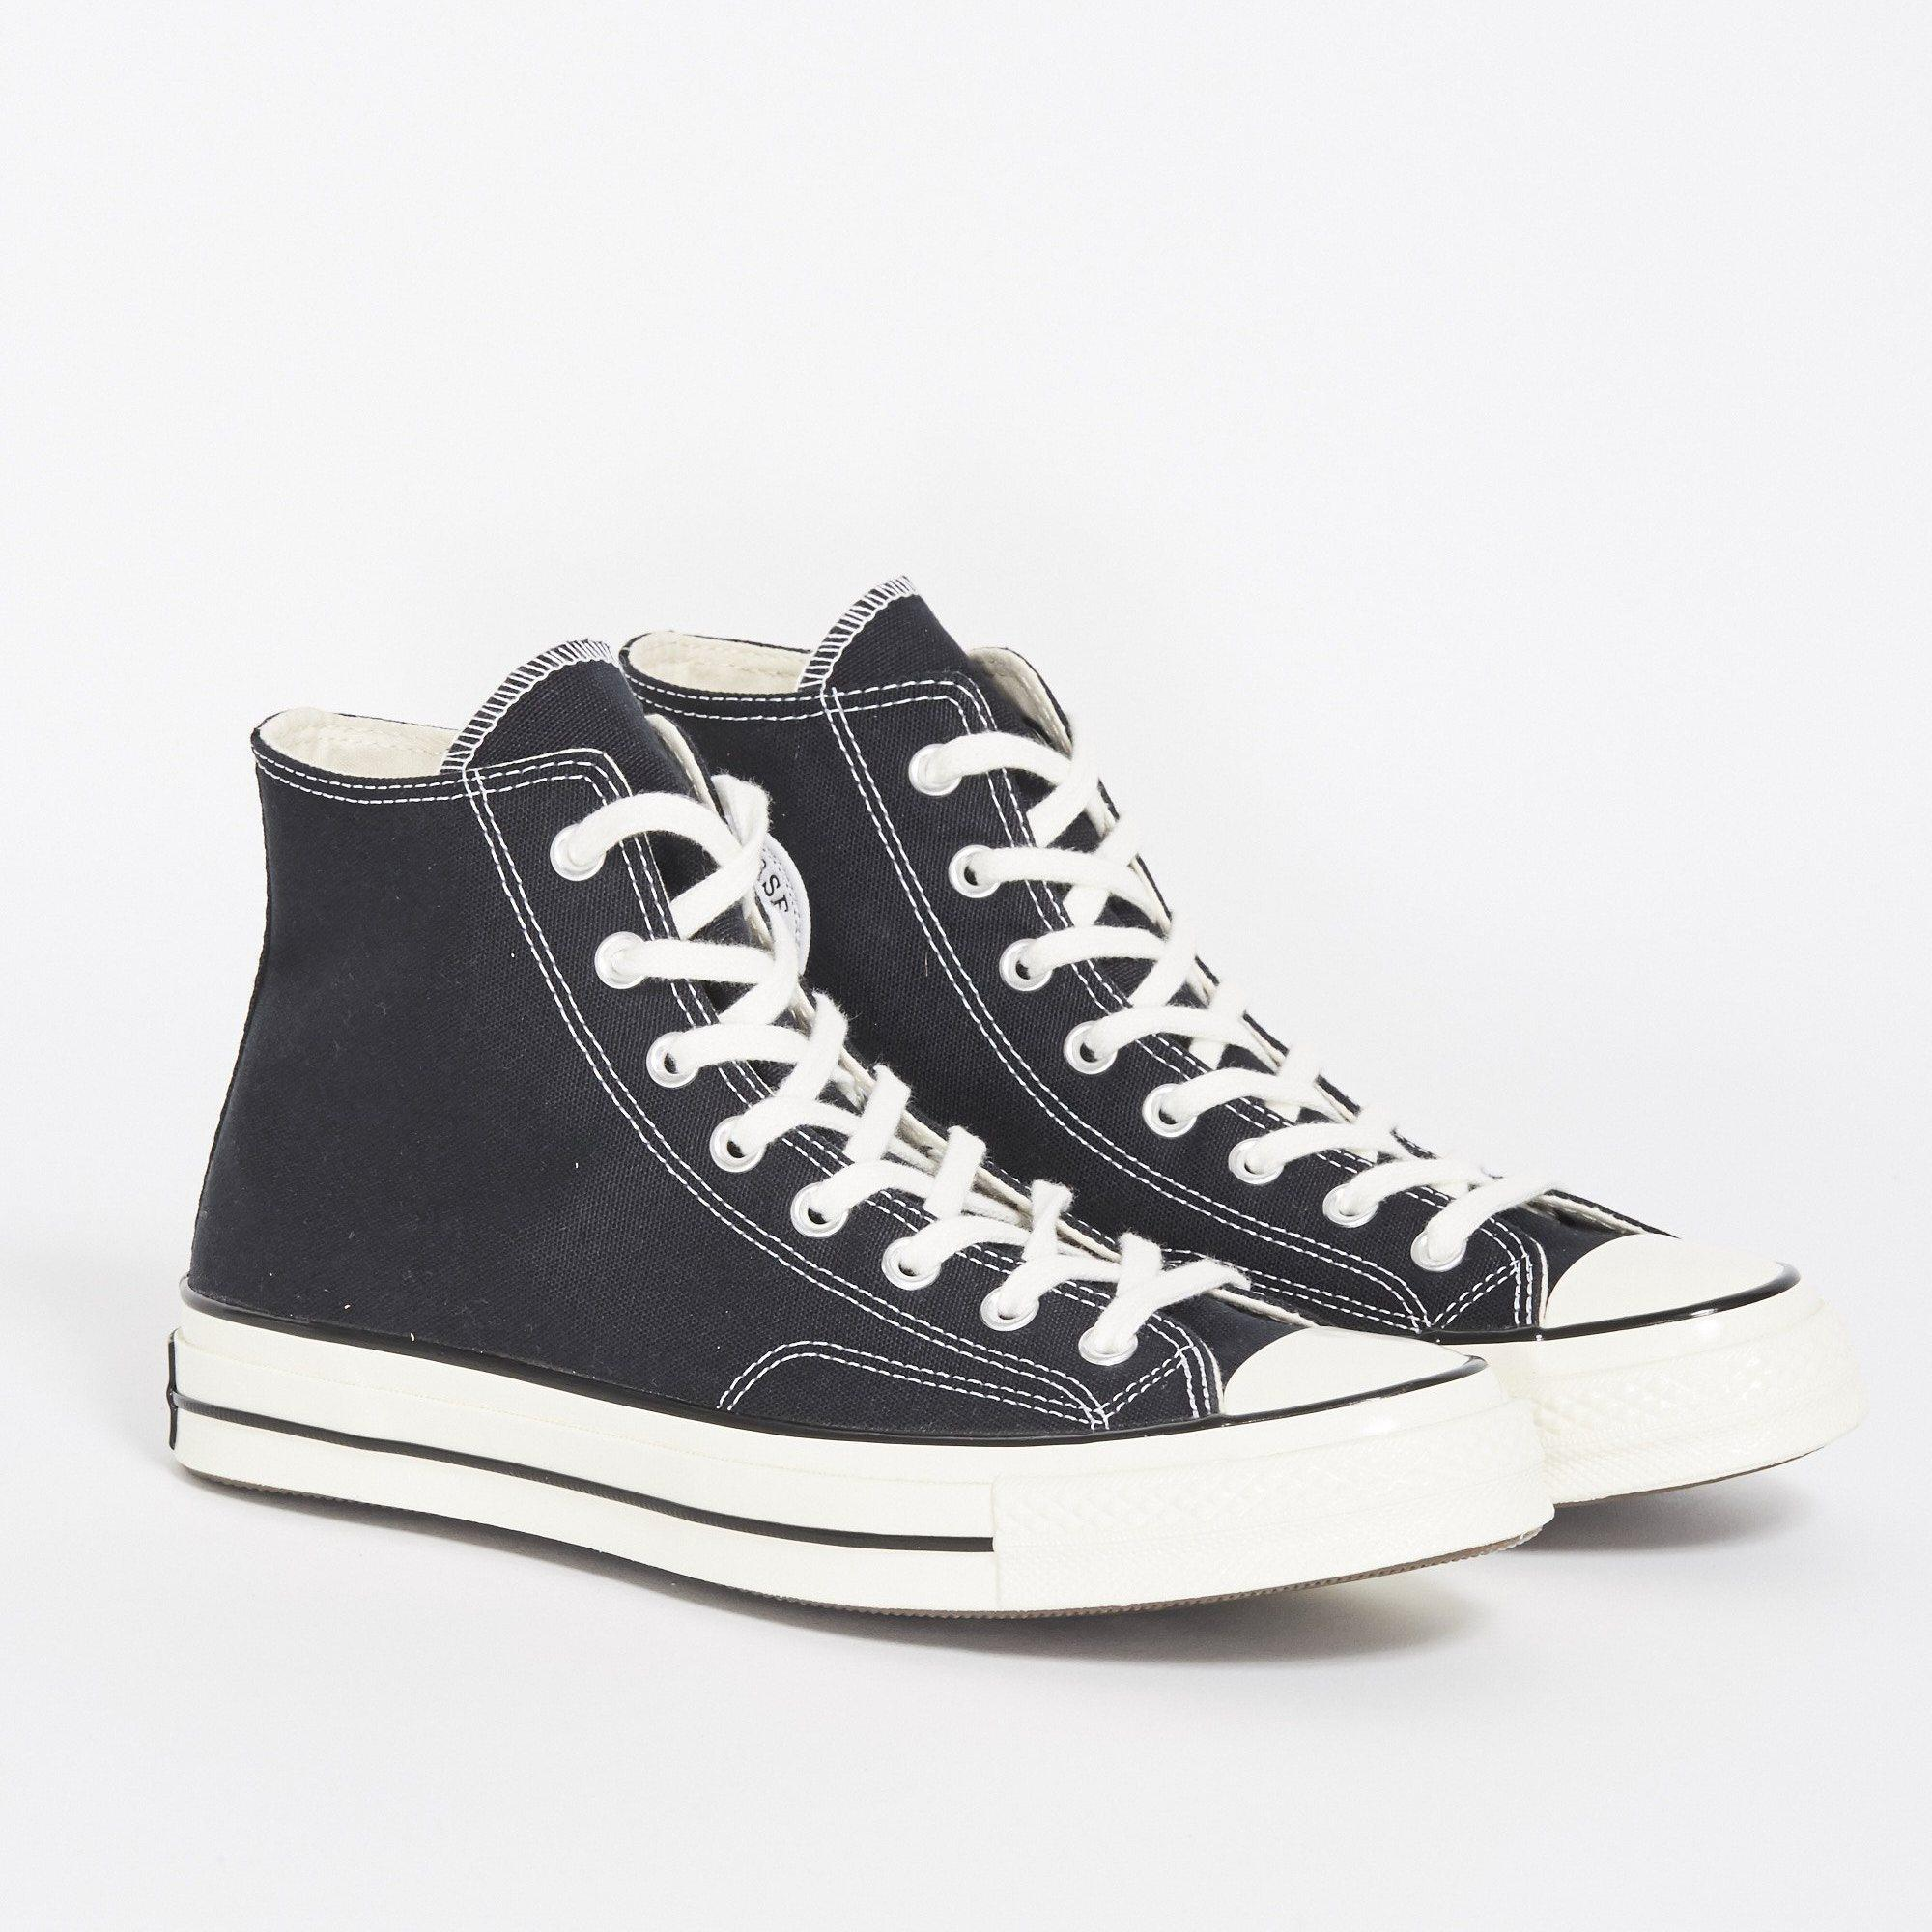 Converse Chuck Taylor 70s Canvas Hi - Black White 8577195132